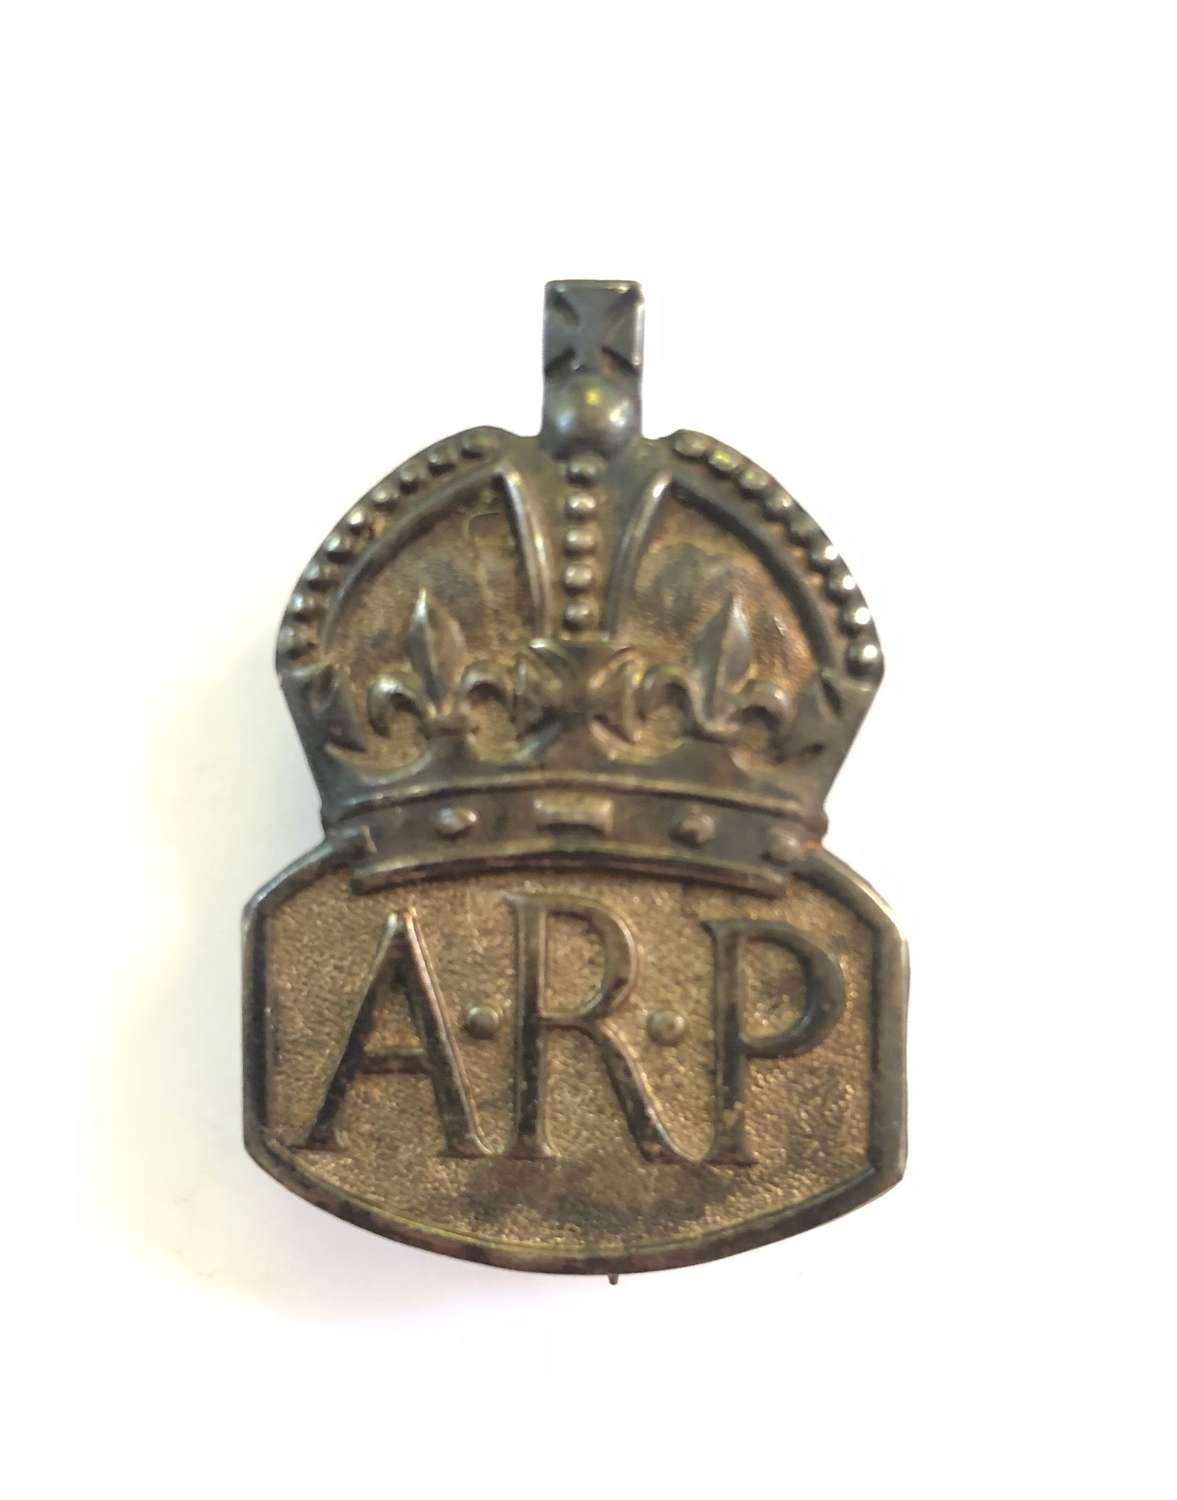 WW2 Home Front ARP 1938 Silver Badge.